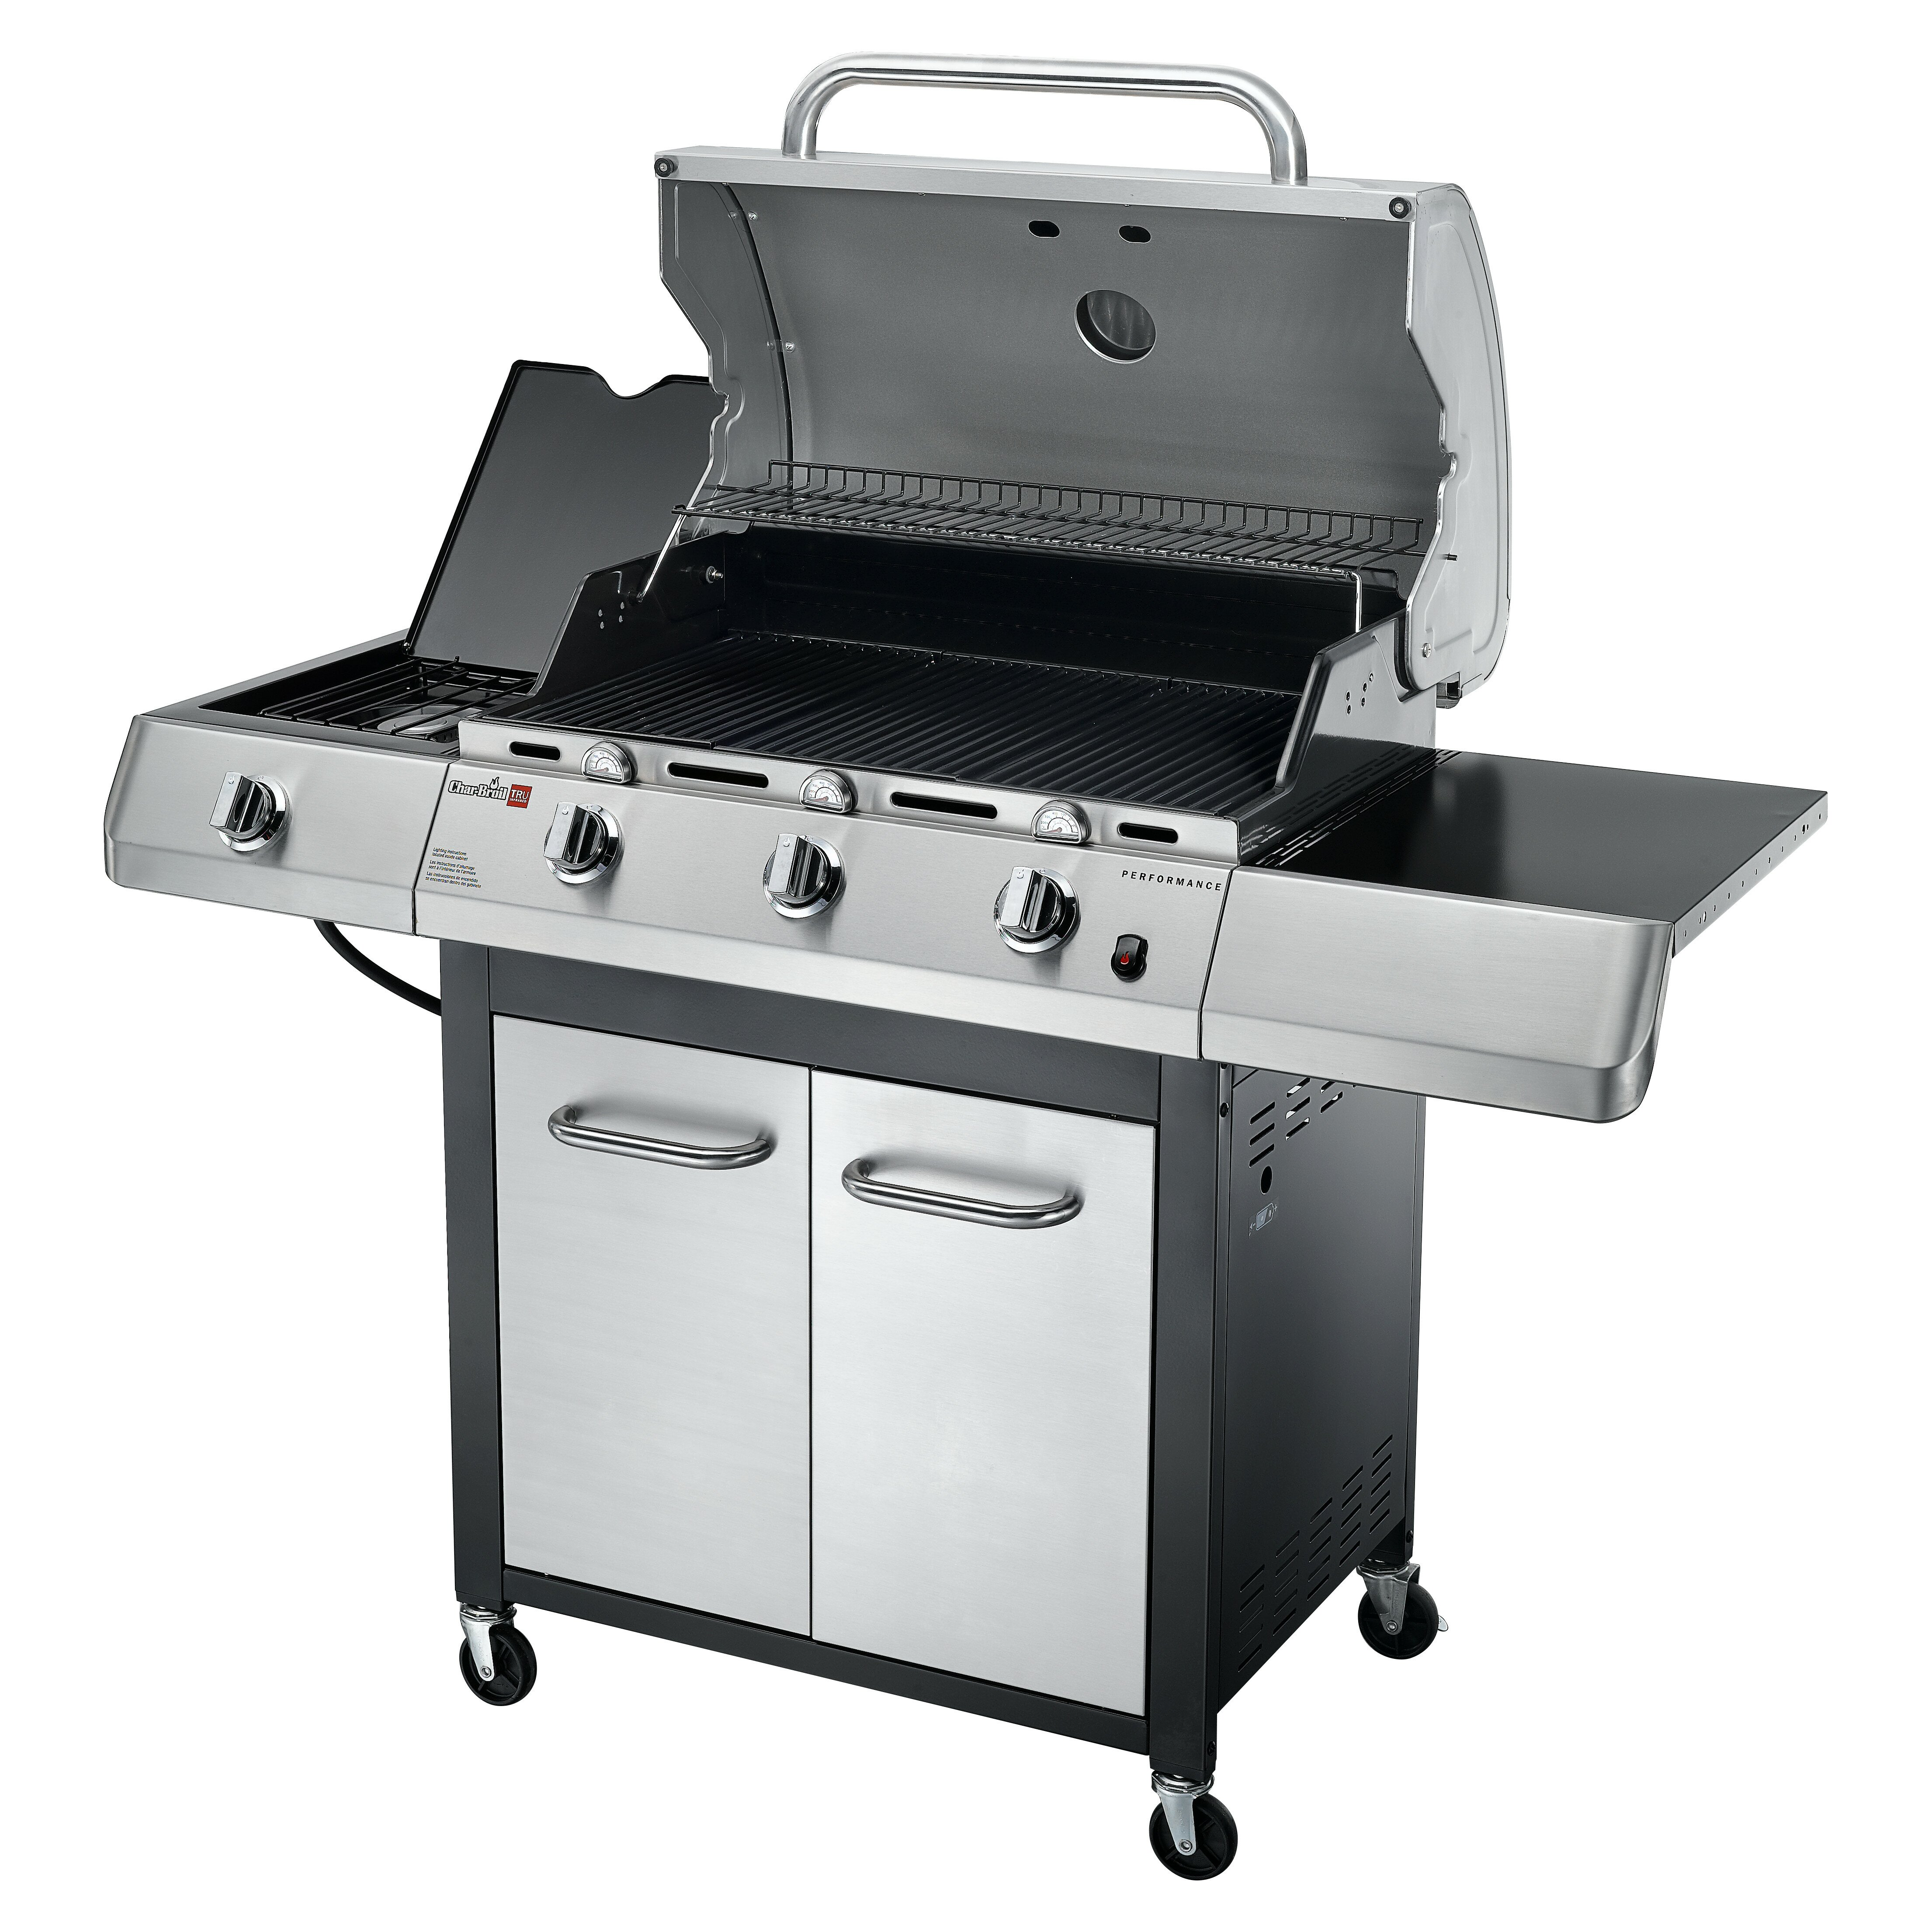 CharBroil TRU Infrared Performance 3 Burner Gas Grill with ...